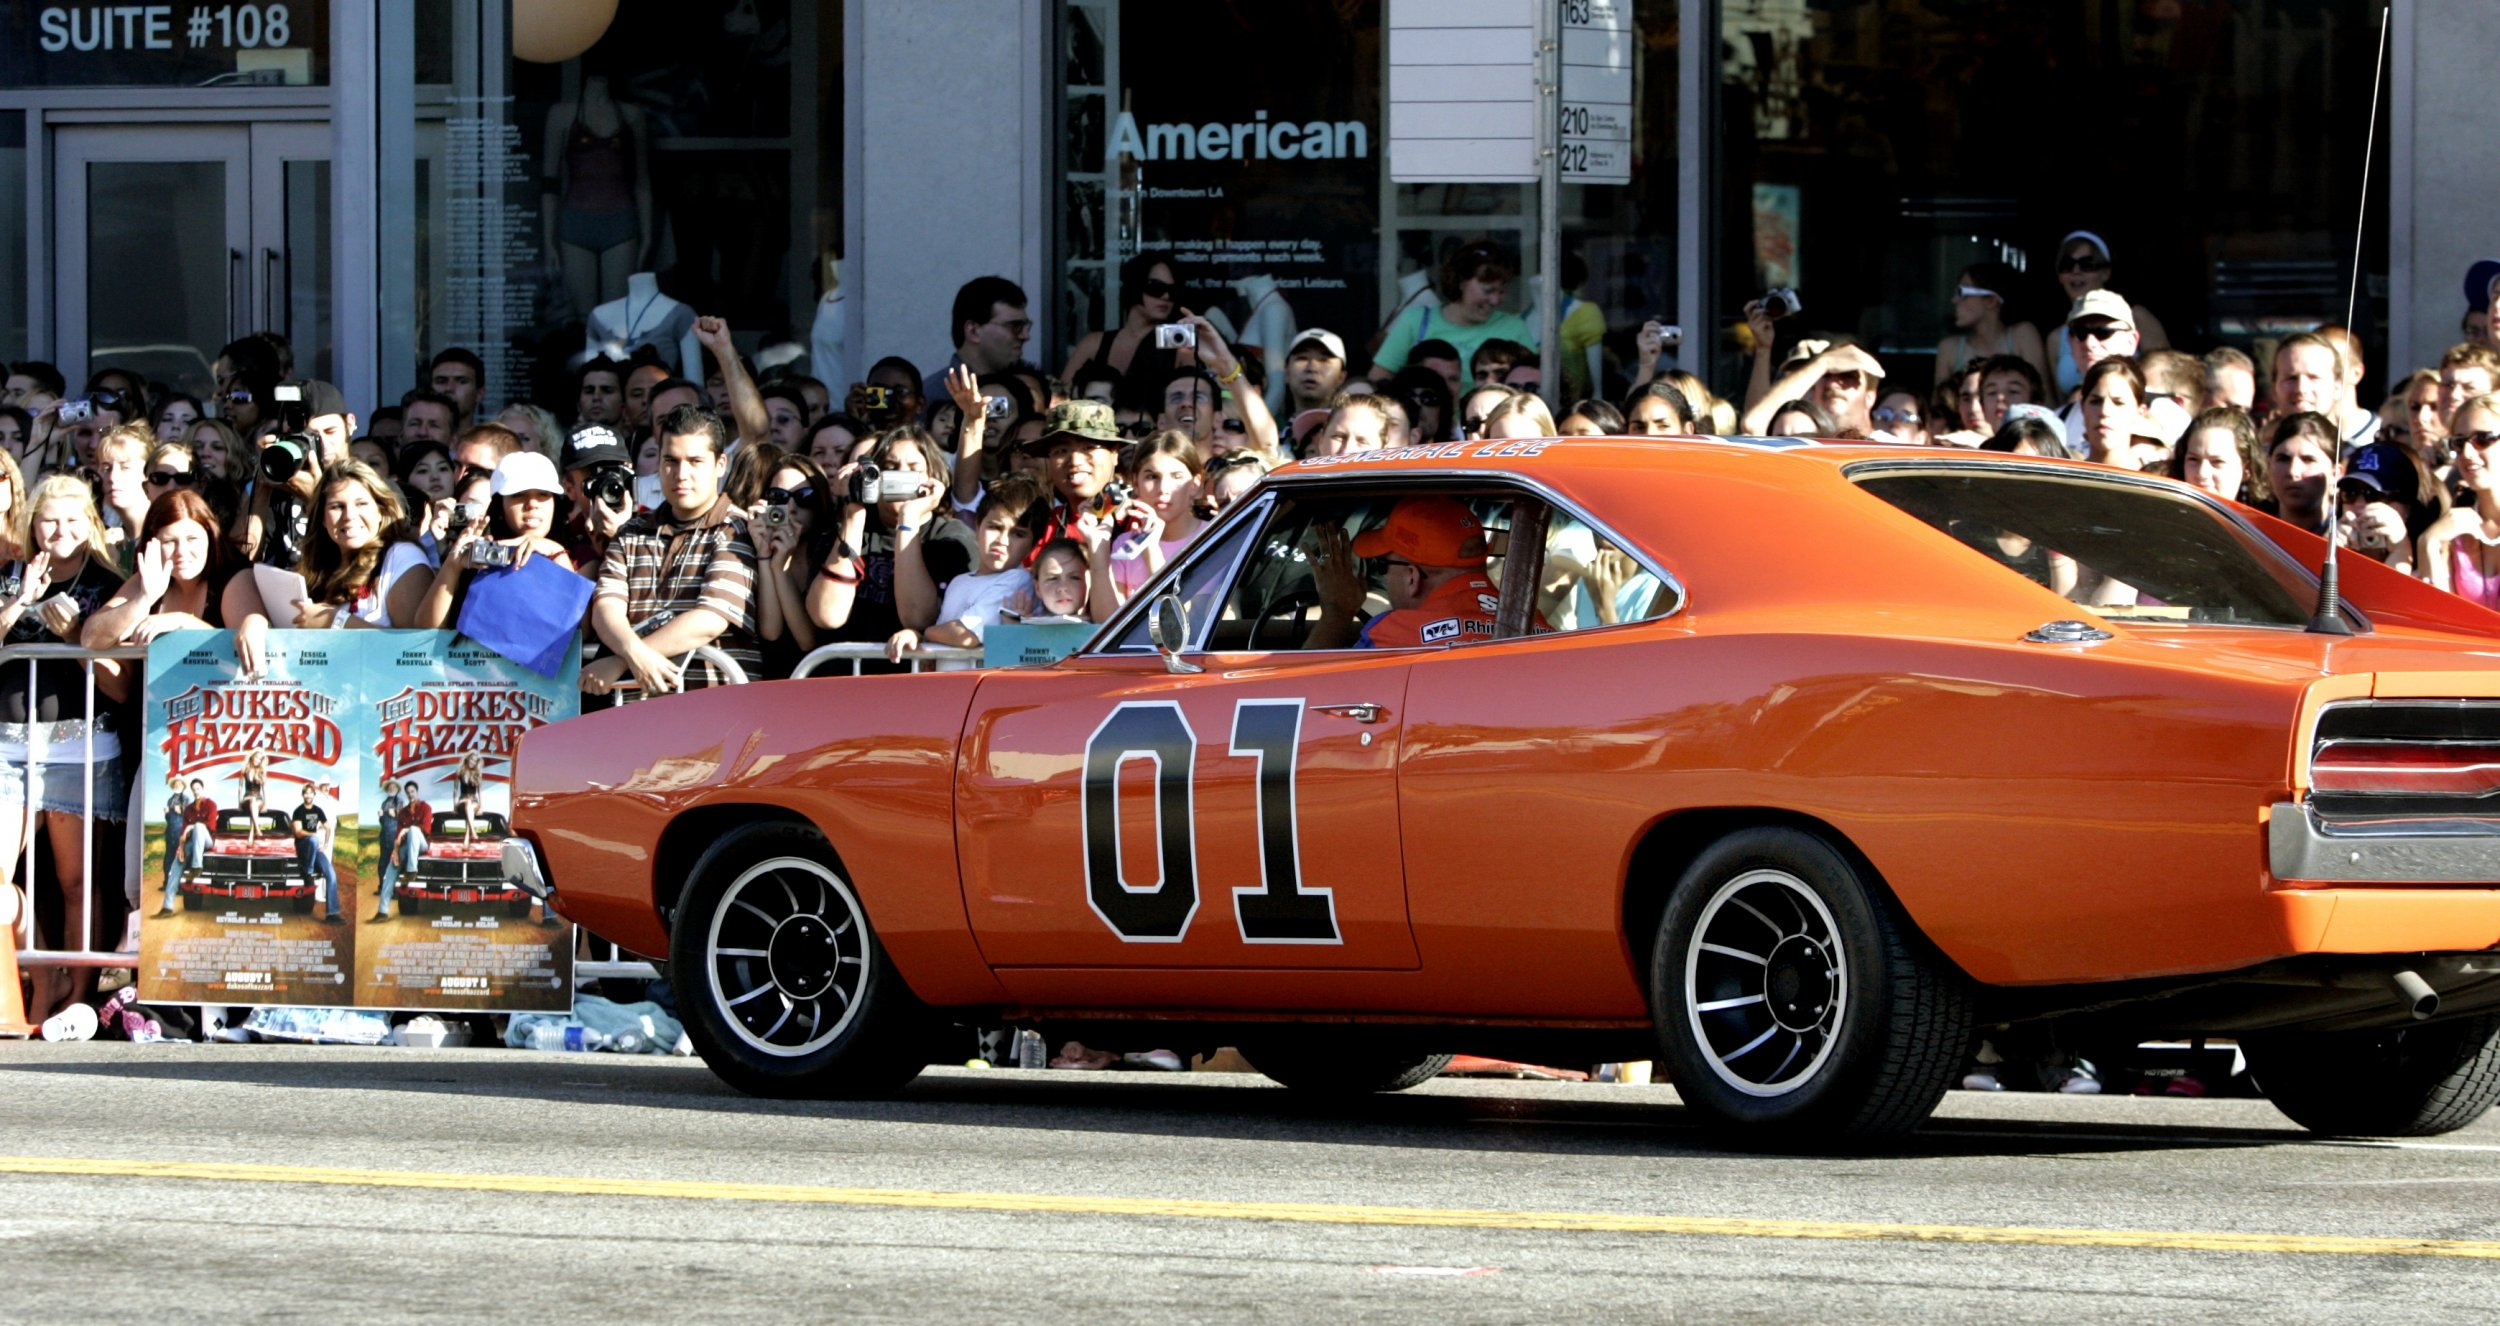 bubba watson will paint over confederate flag on the dukes of hazzard car